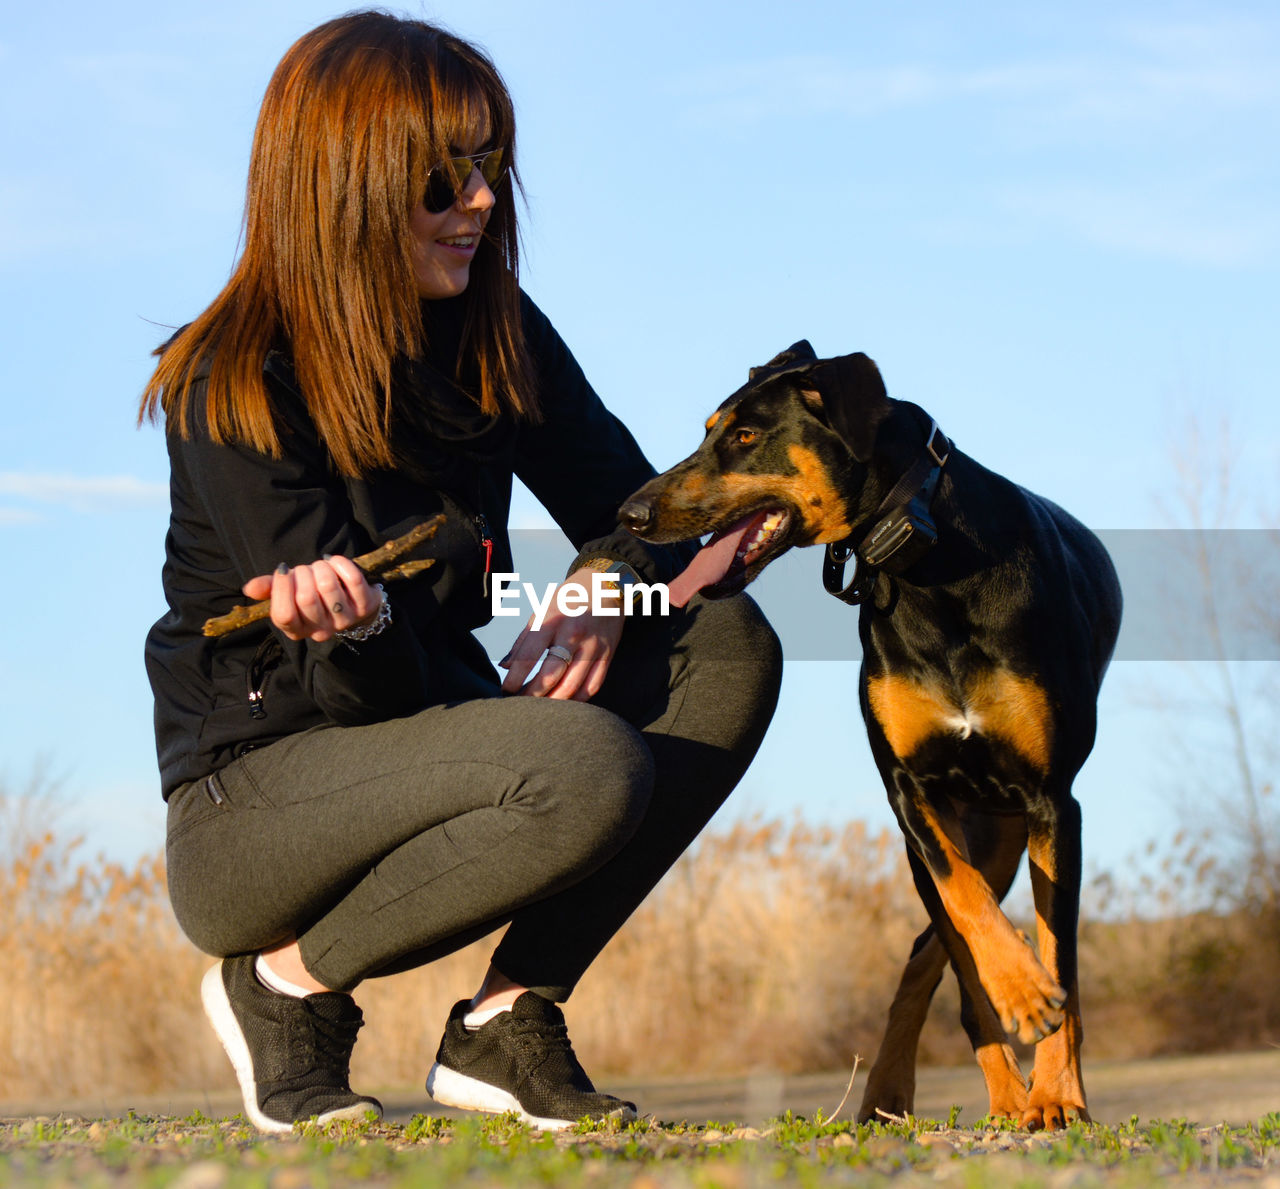 YOUNG WOMAN WITH DOG SITTING ON FIELD